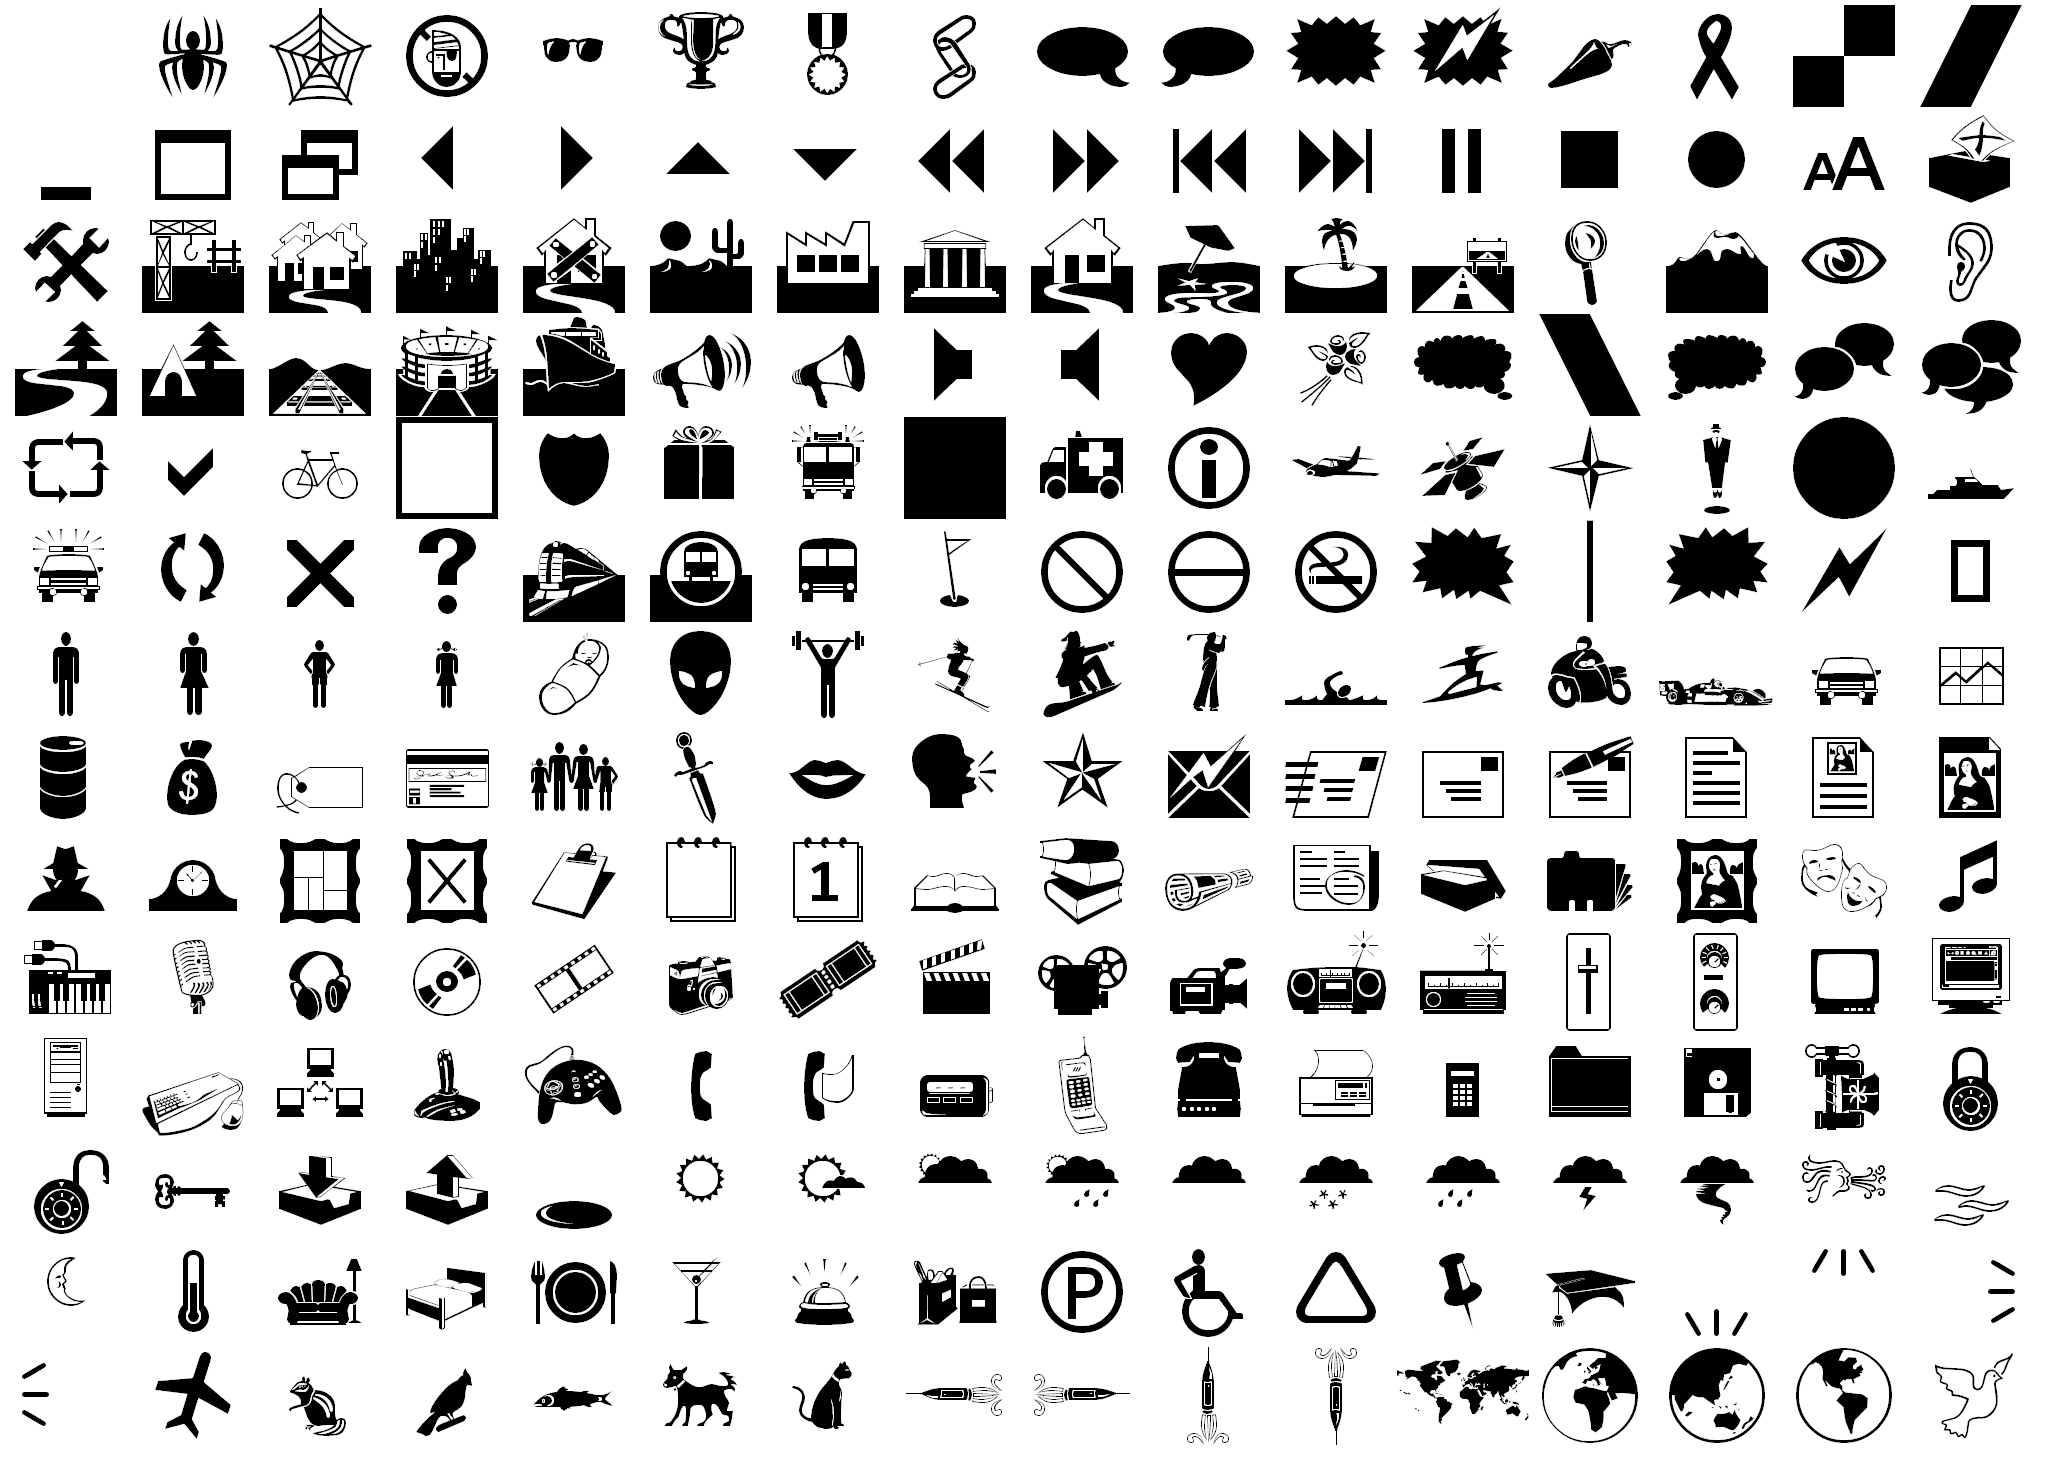 Wingdings Font Installeren  Google Zoeken  Computerstuff